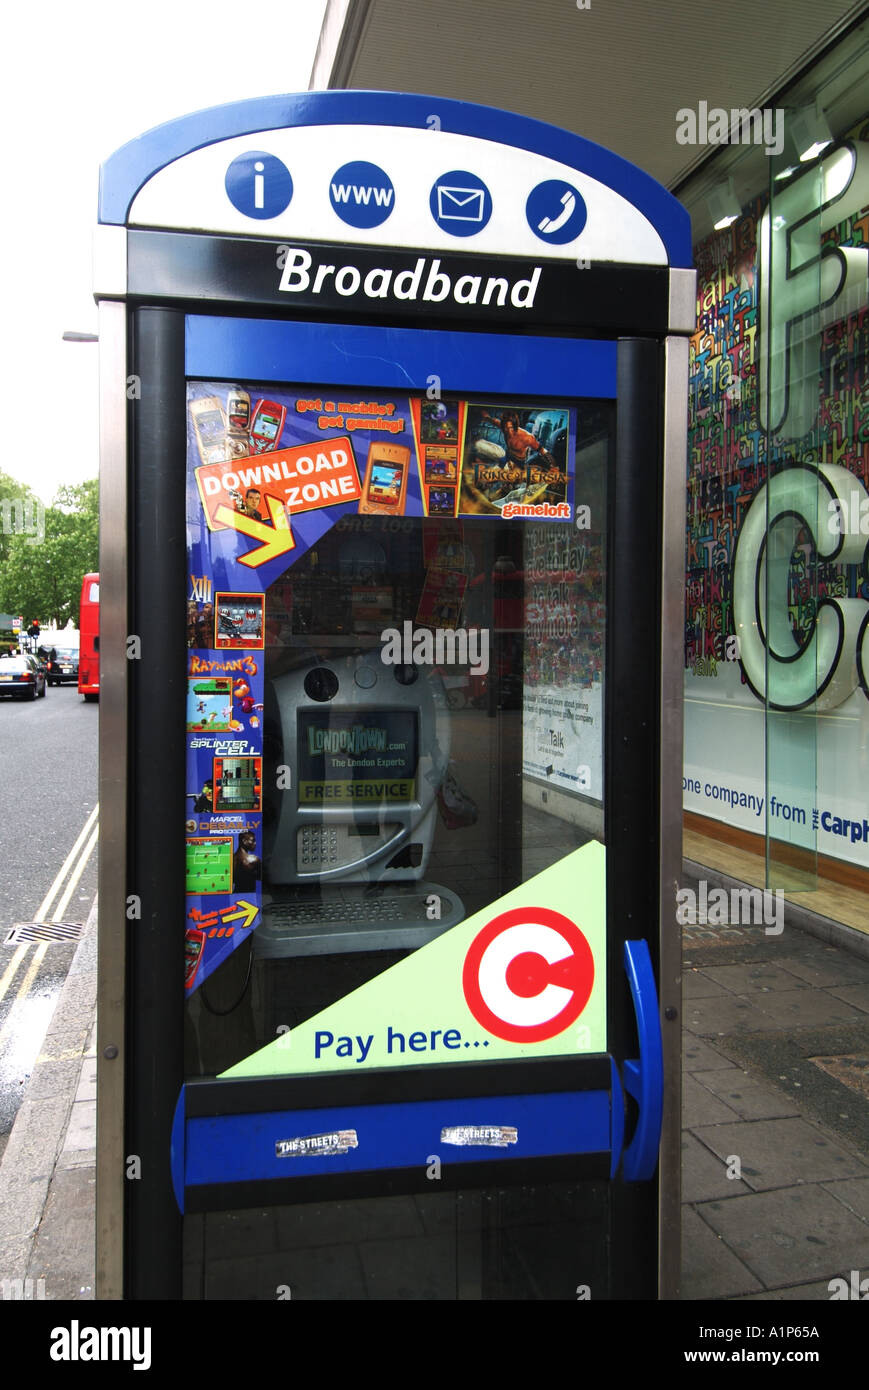 London City of Westminster pavement phone box with signs for web and email access as well as payment of congestion charges - Stock Image